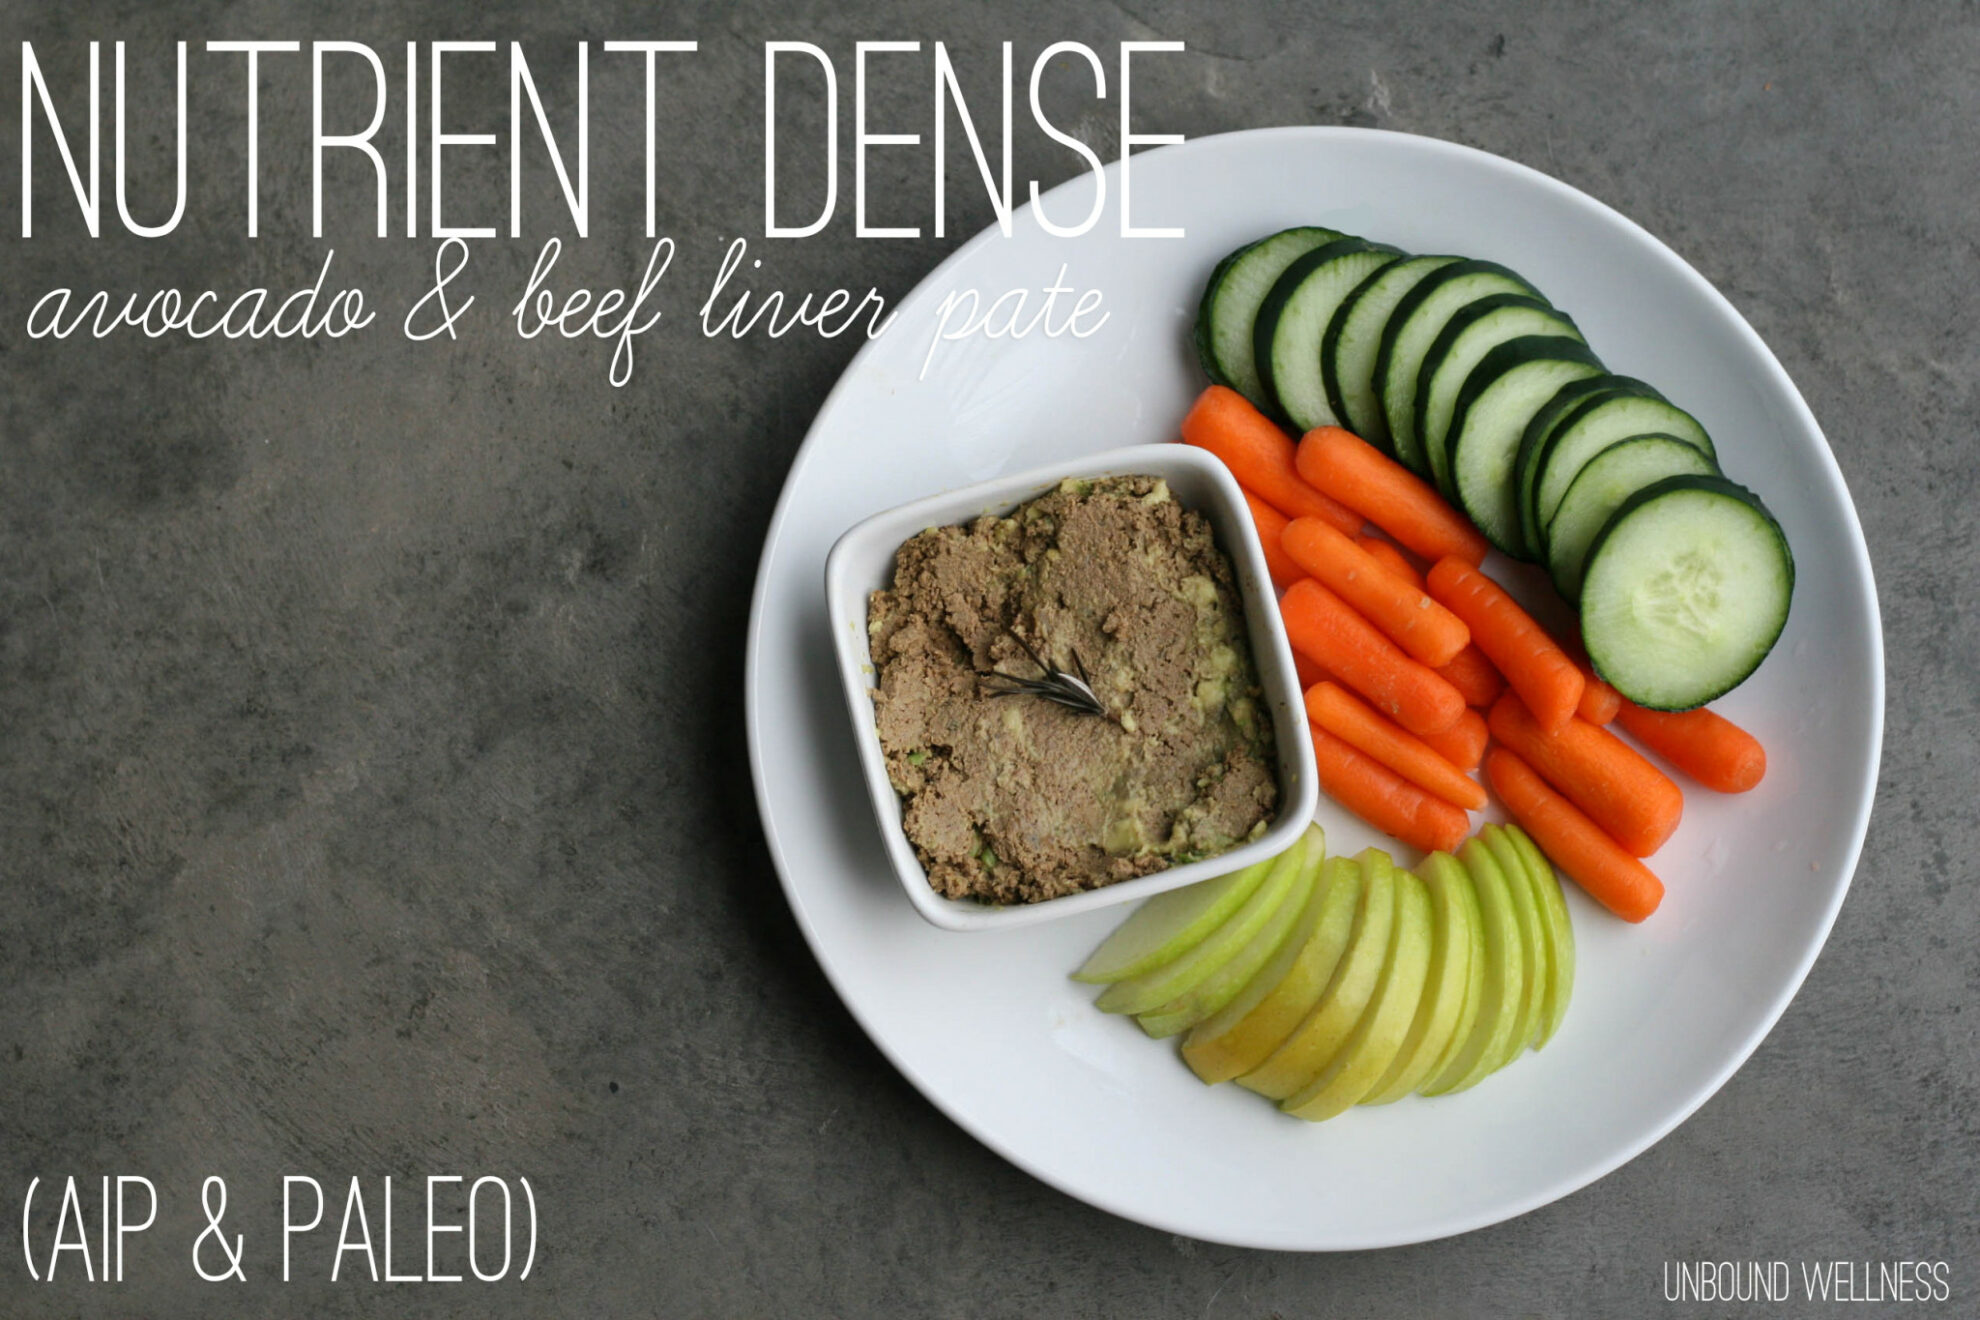 Nutrient Dense Avocado Beef Life Pate (paleo and AIP)